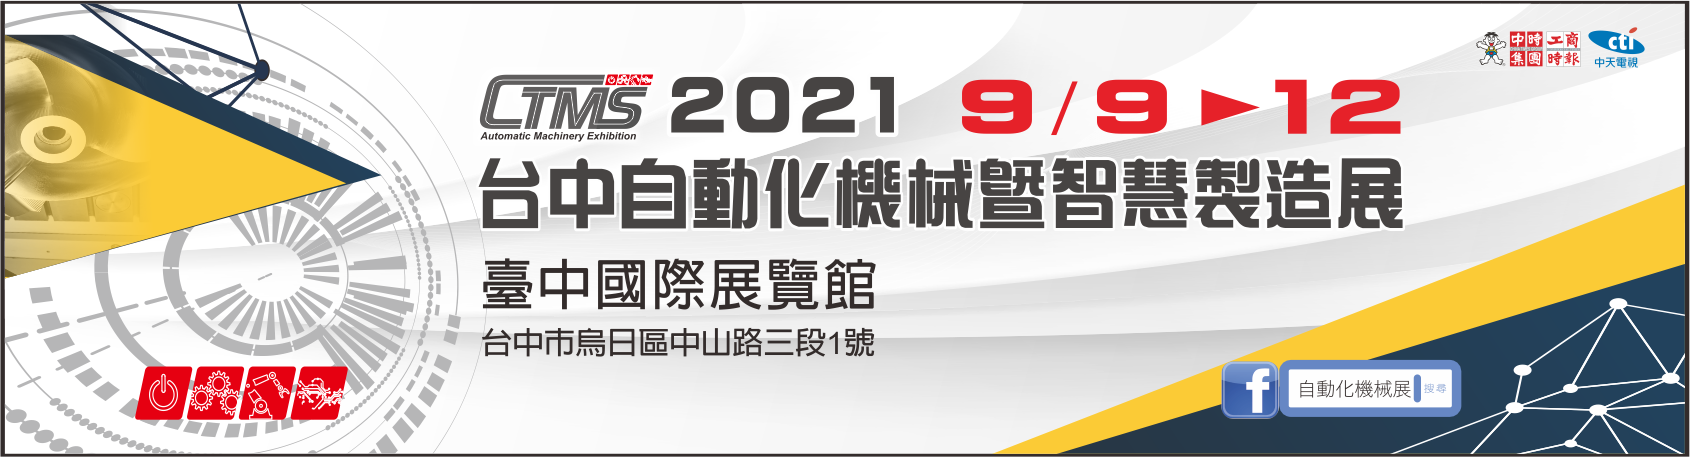 2021 Taichung Automatic Machinery & Intelligent Manufacturing Show